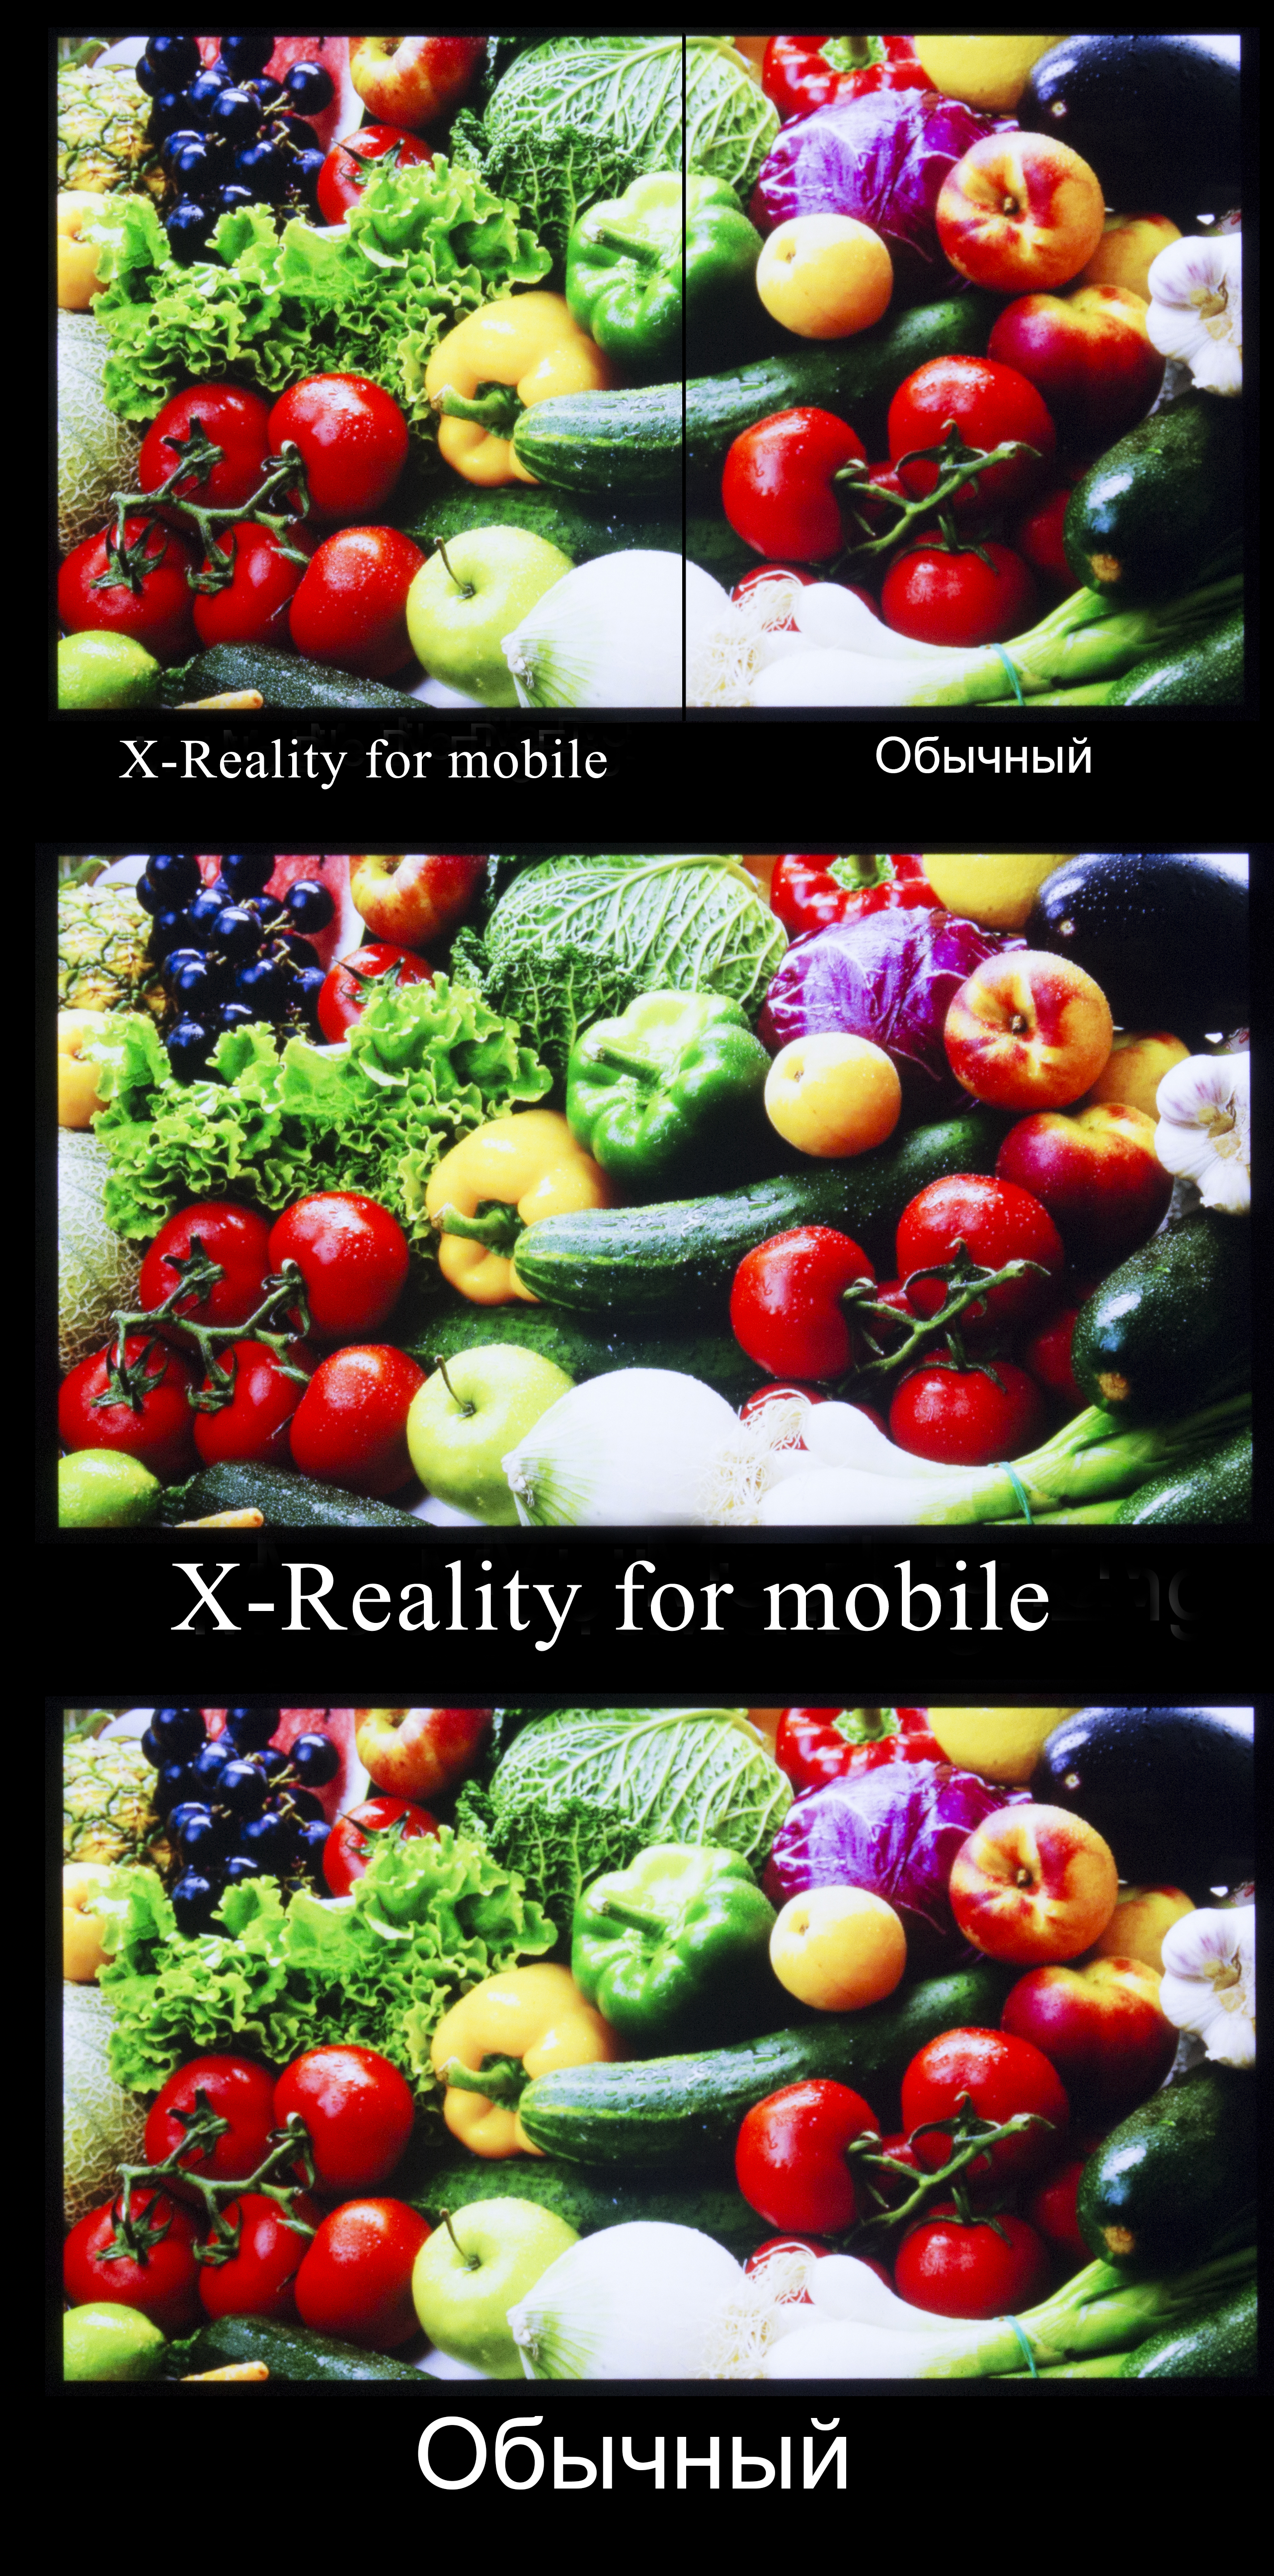 X-Reality for mobile